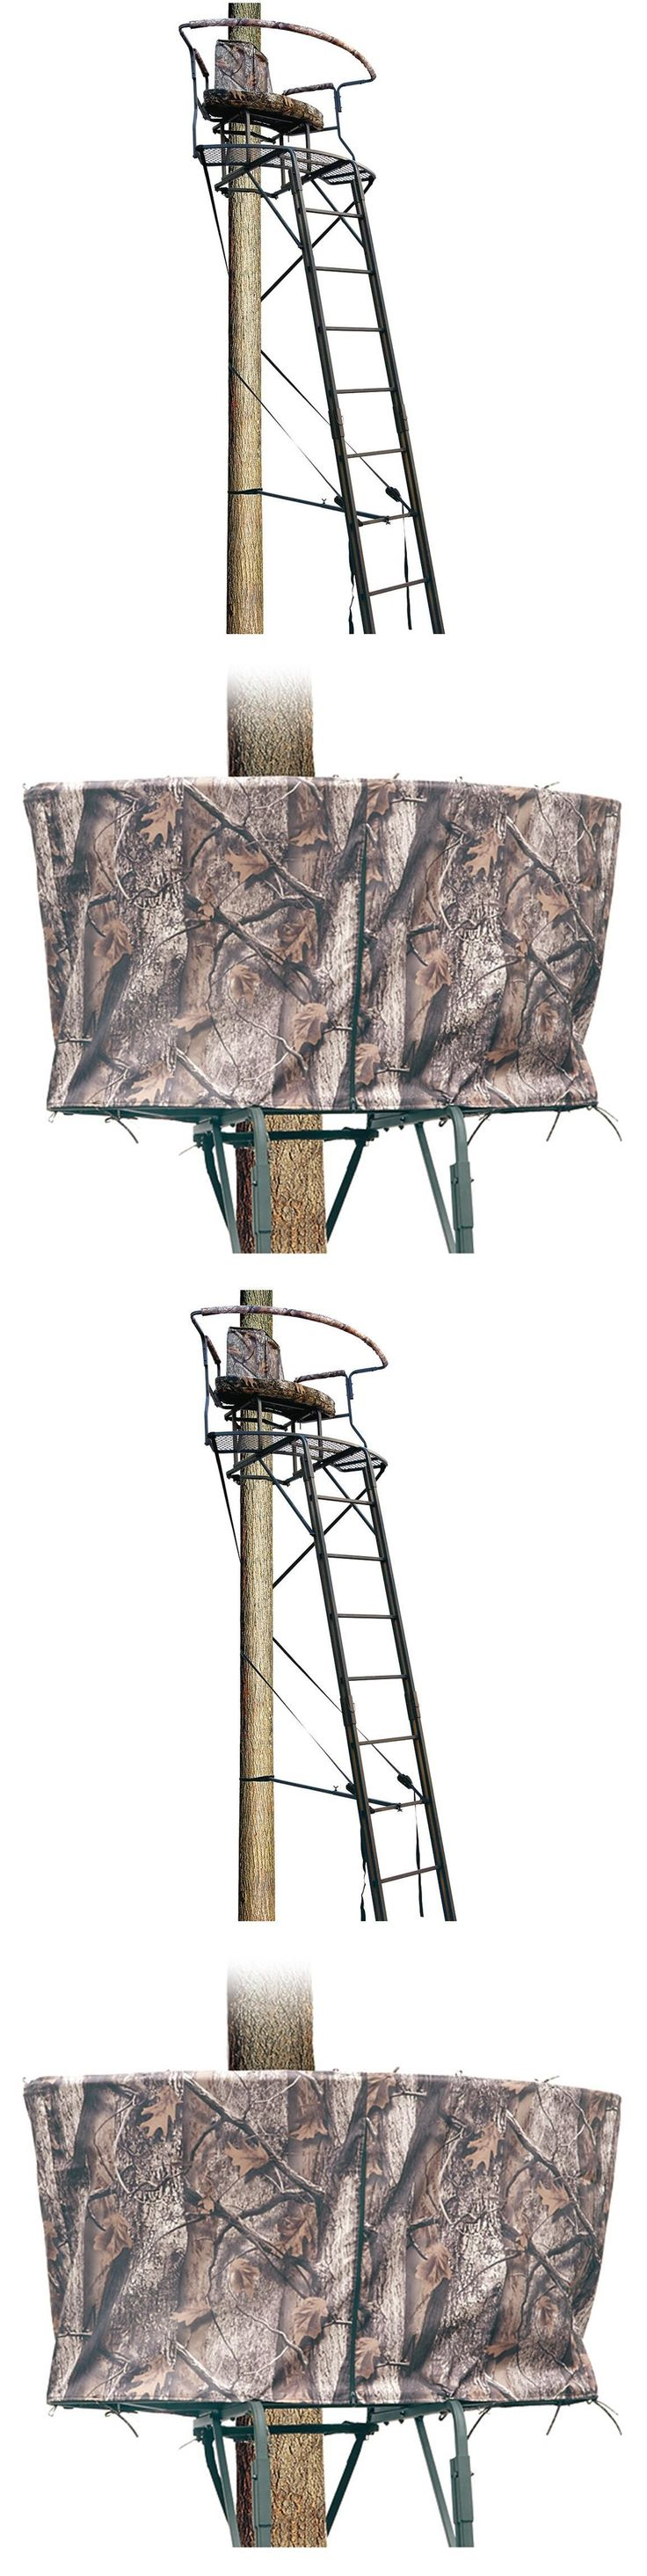 Tree Stands 52508: Tree Stand Ladder 2 Seat 17.5 Feet Hunting Shooting Deer Outdoor Steel Blind New BUY IT NOW ONLY: $260.19